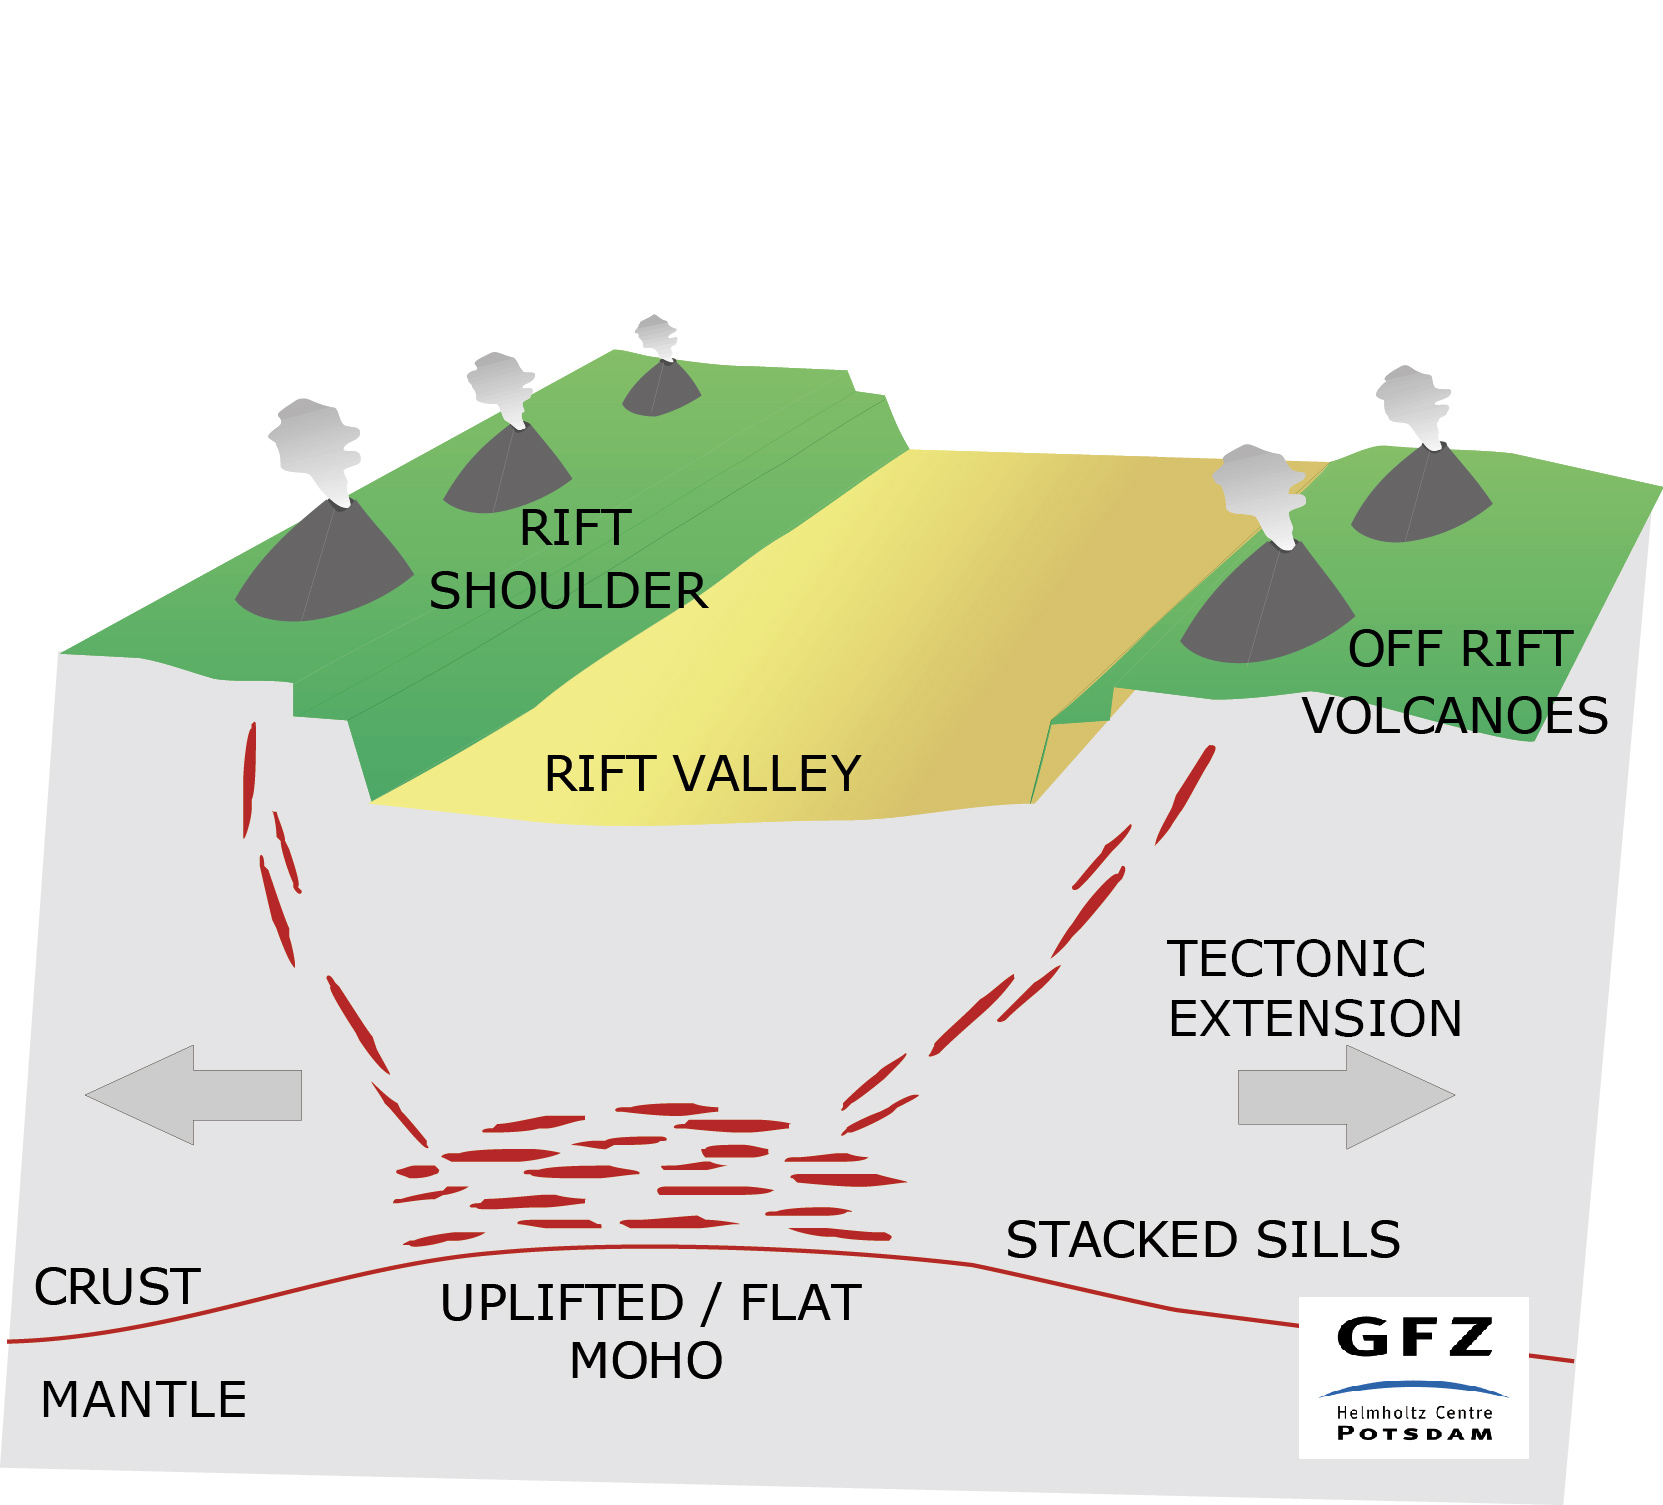 Off rift volcanoes explained schematic diagram illustrating the formation of off rift volcanoes credit r milkereit gfz ccuart Gallery